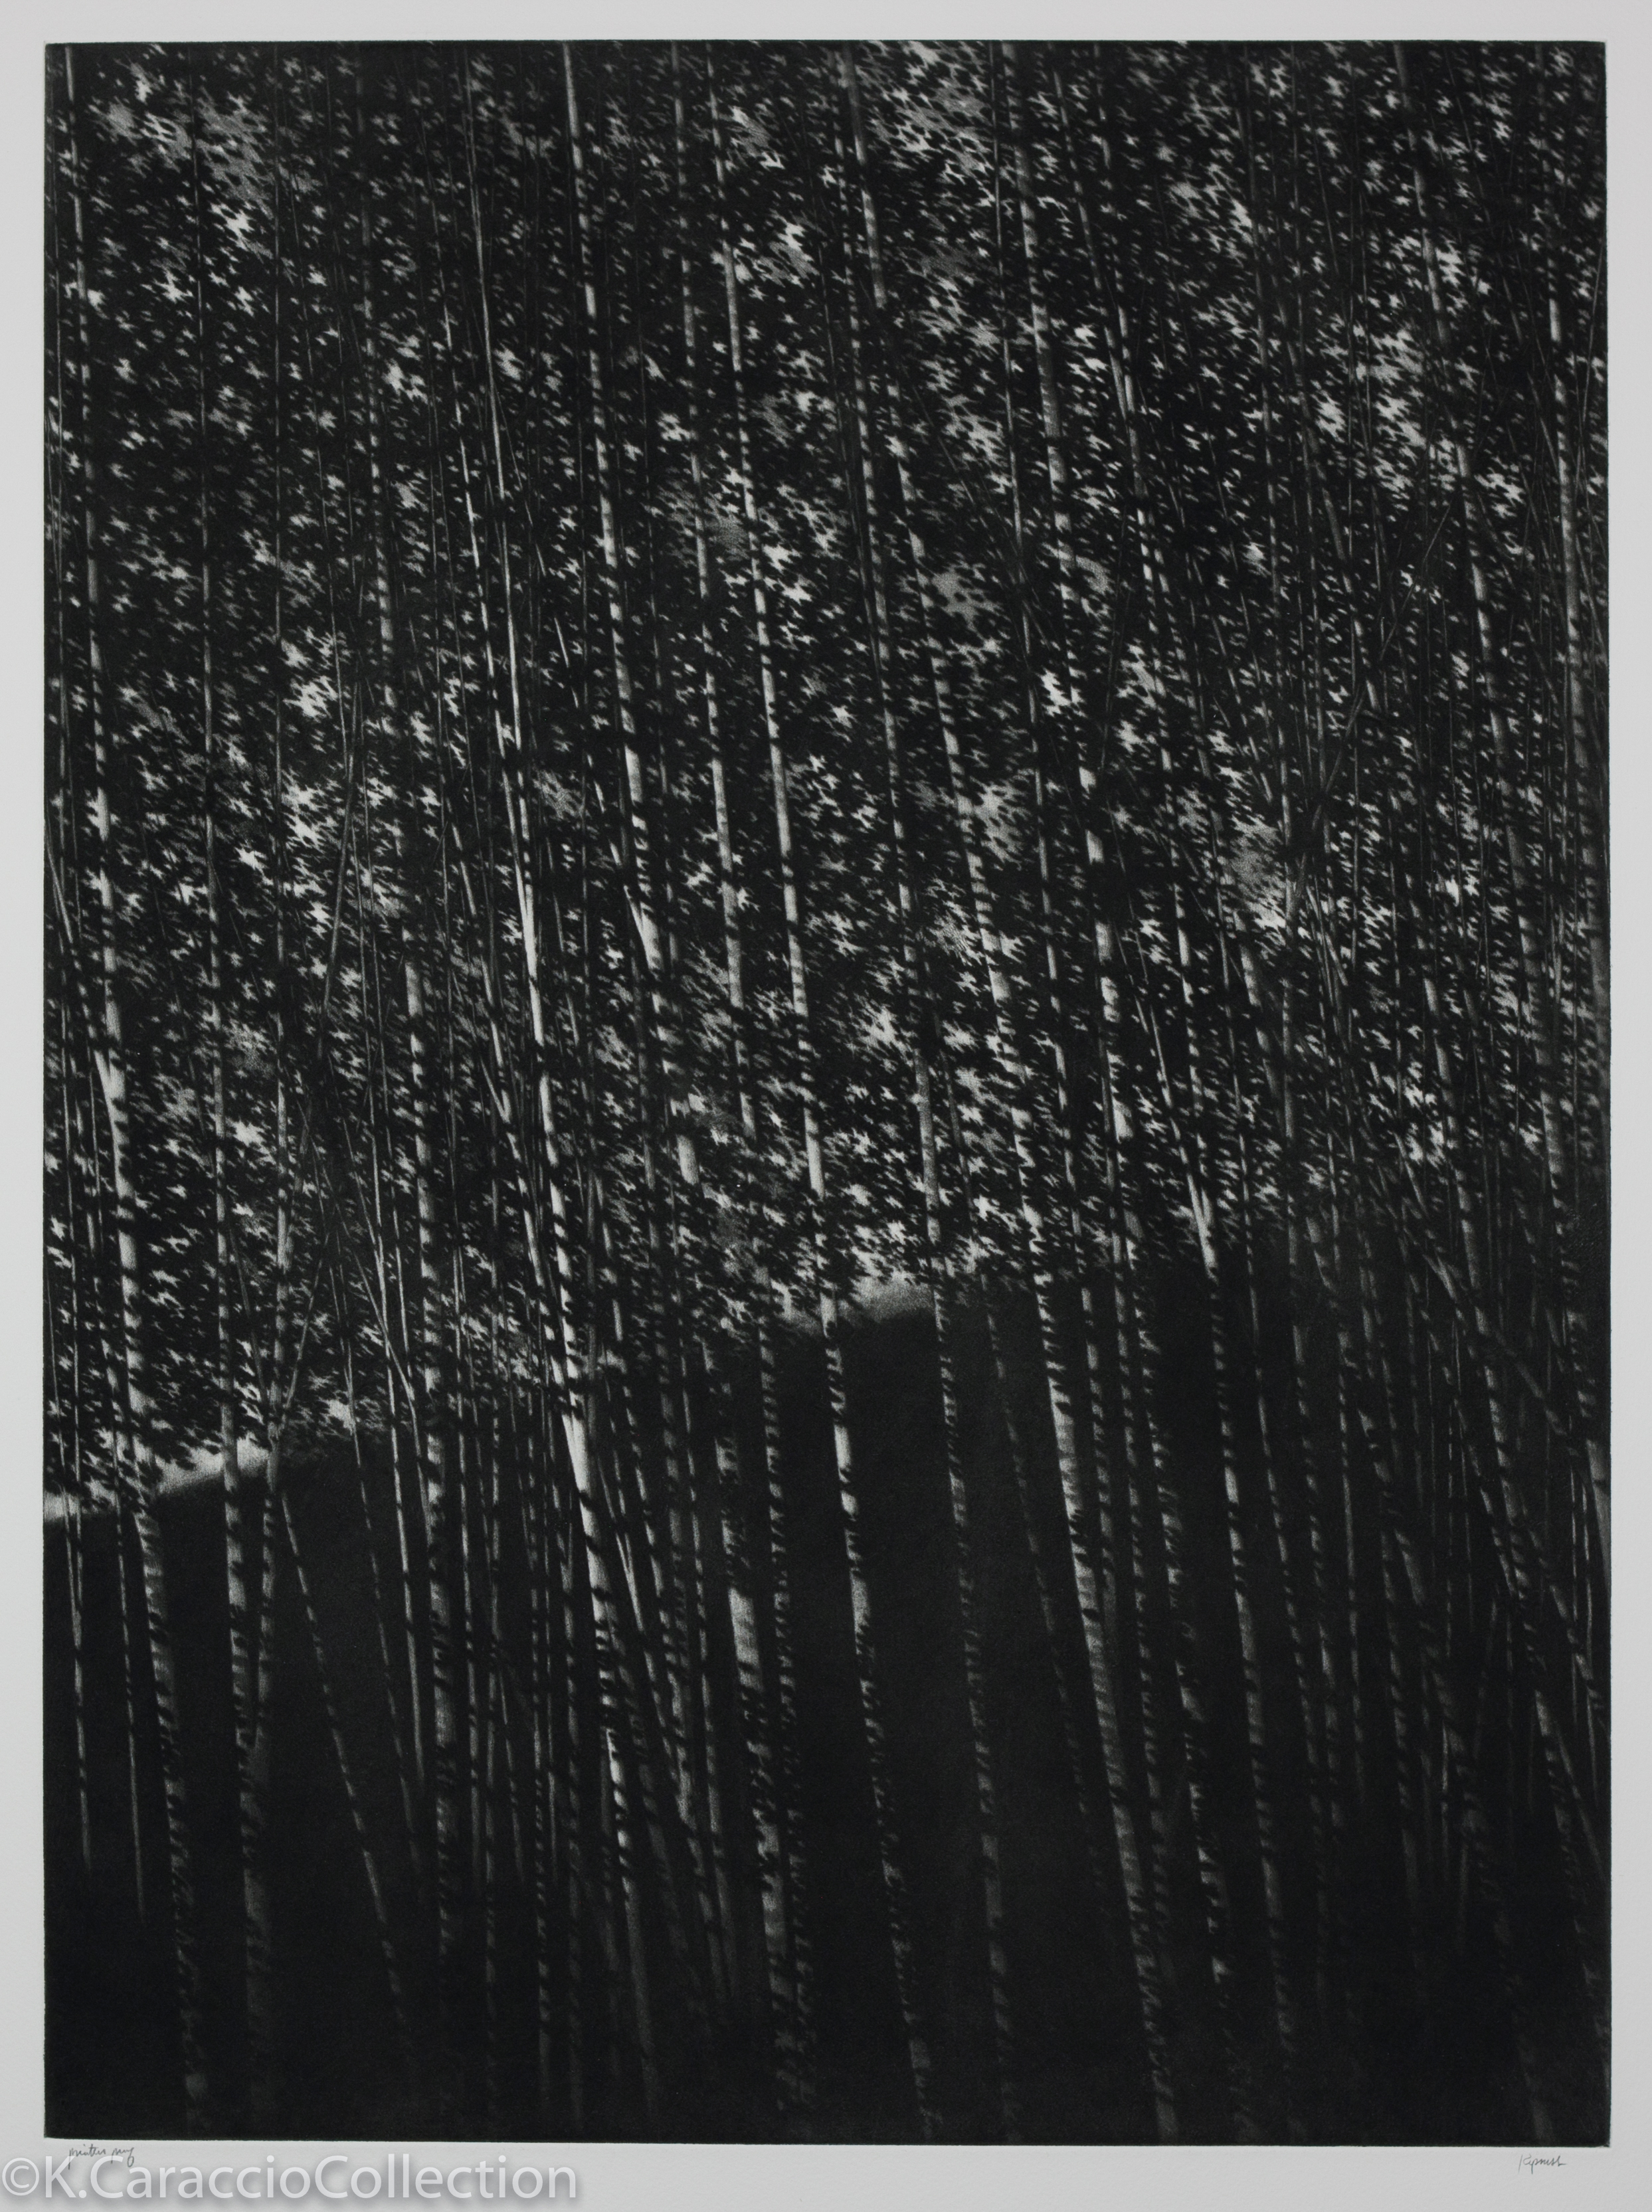 The White Forest, 2000